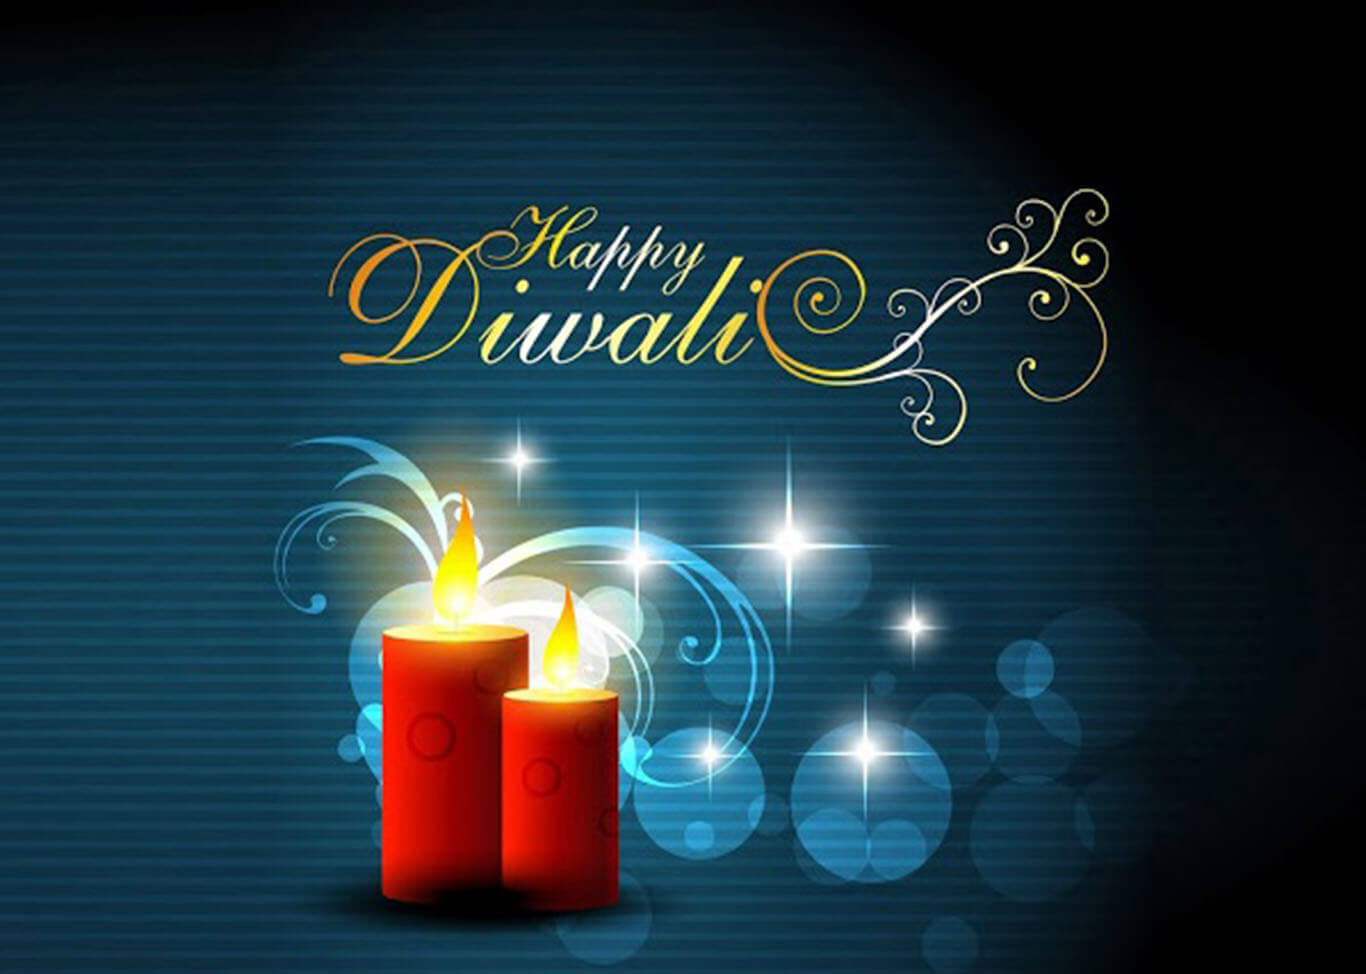 happy diwali crackers background desktop mobile wallpaper